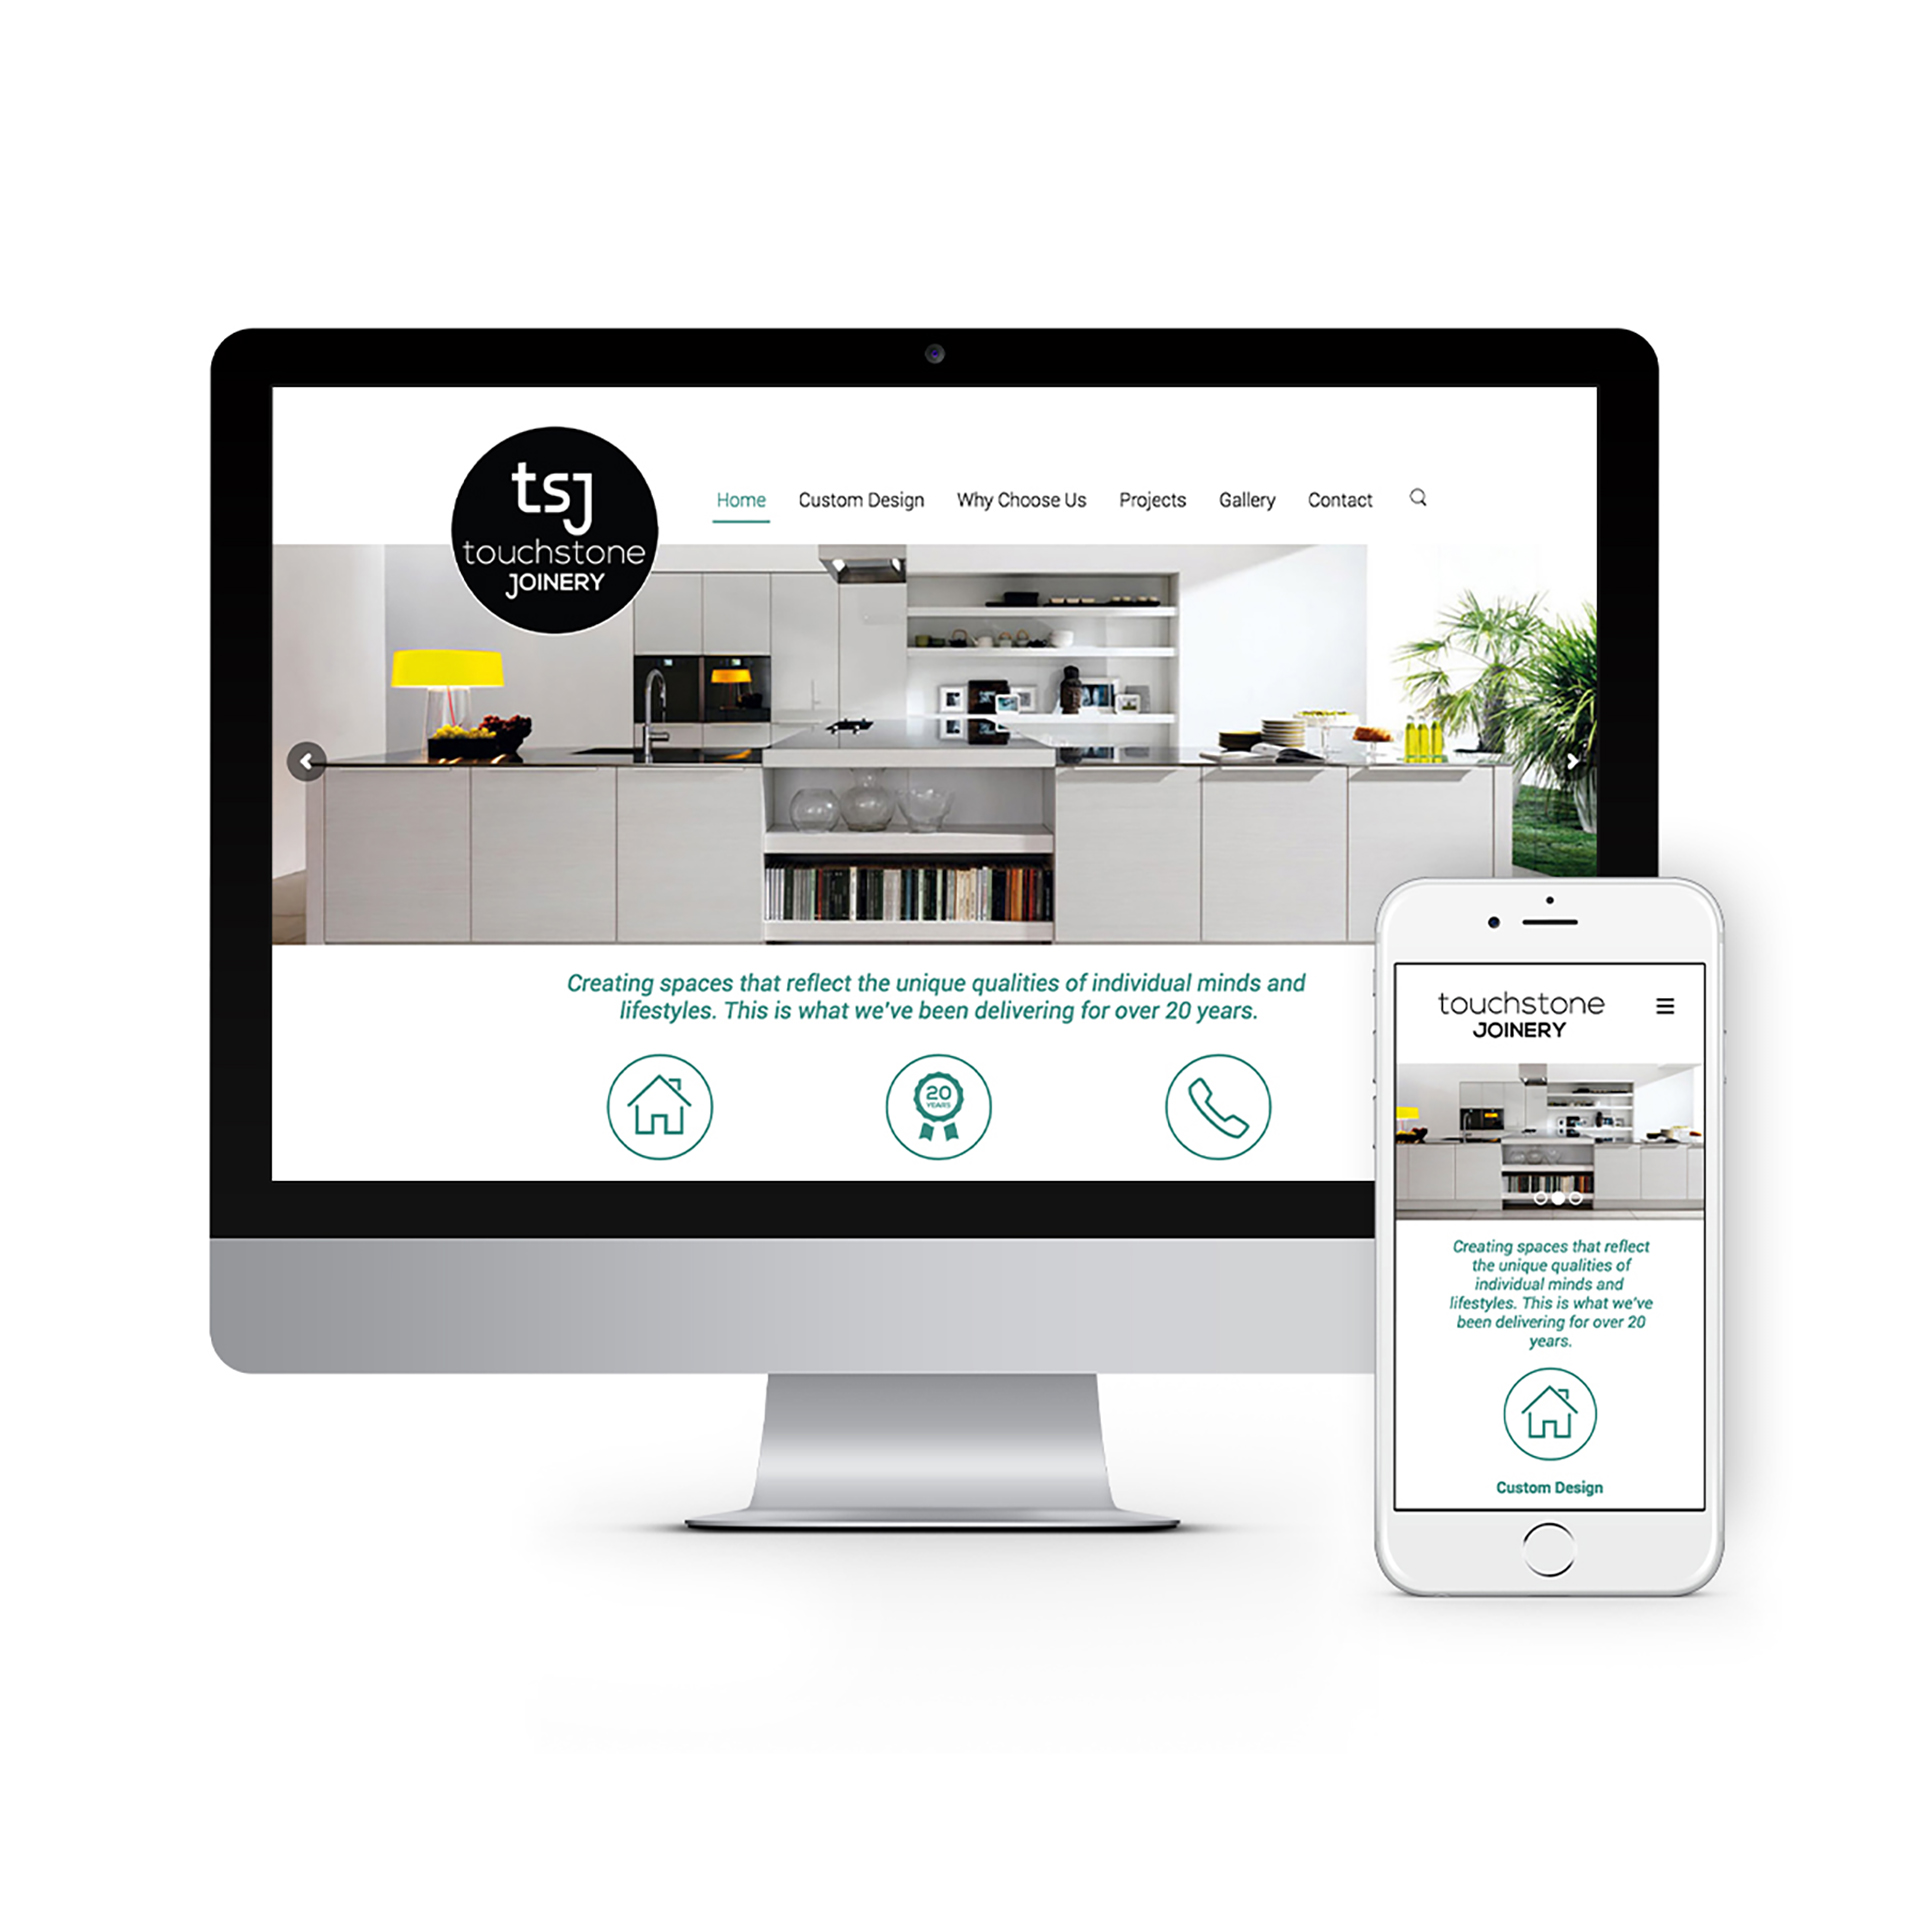 Touchstone Joinery Canberra Website Design 2020